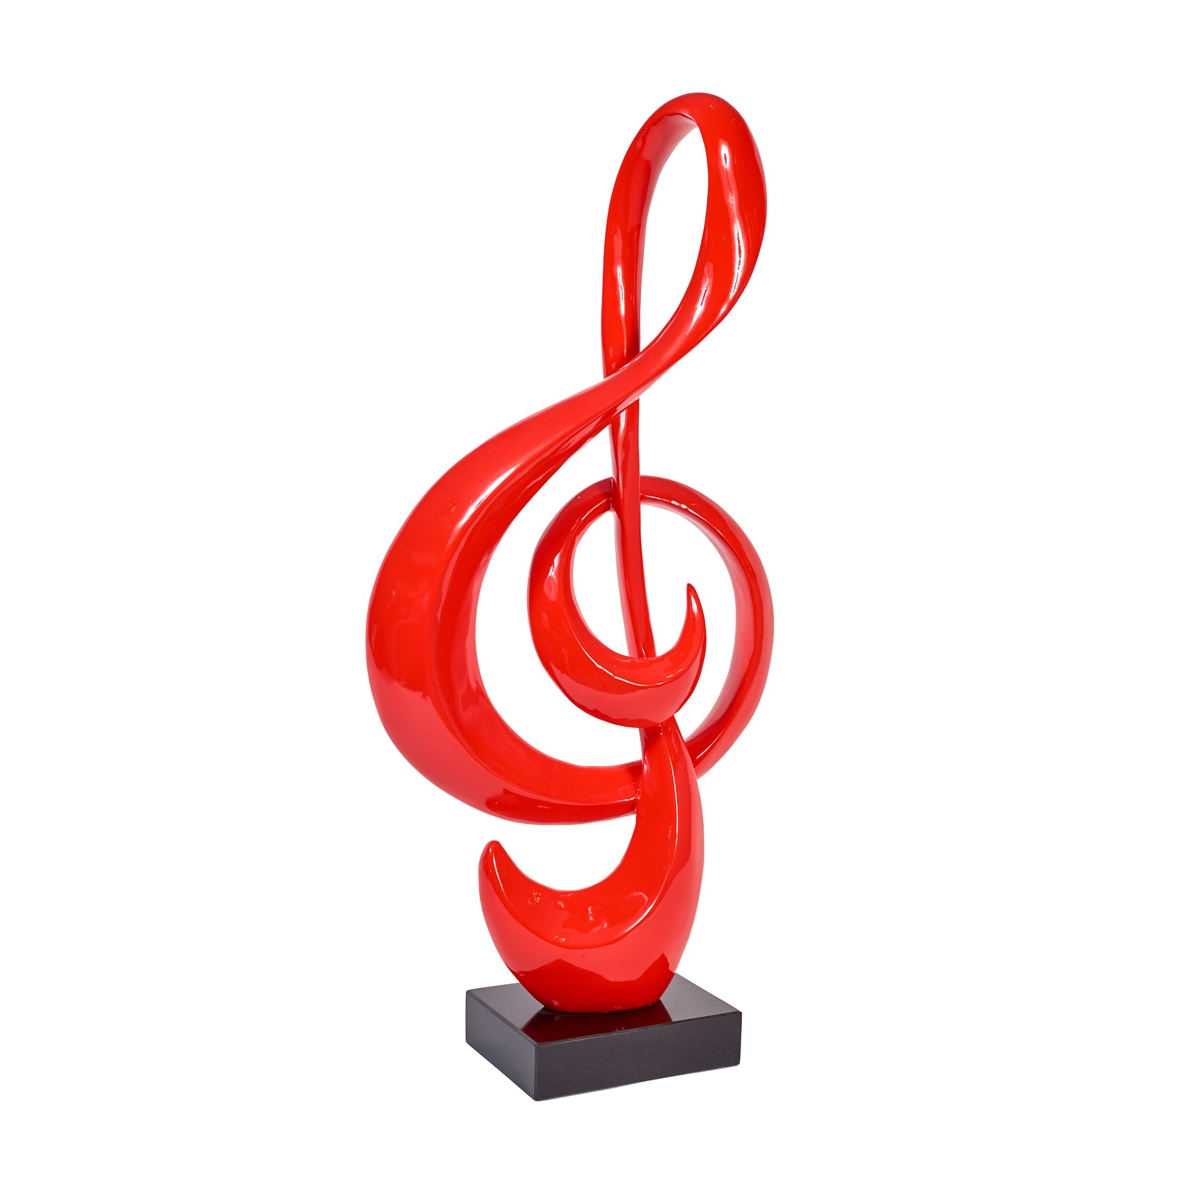 Sculpture design zendart design s lection zendart design for Objet de decoration rouge